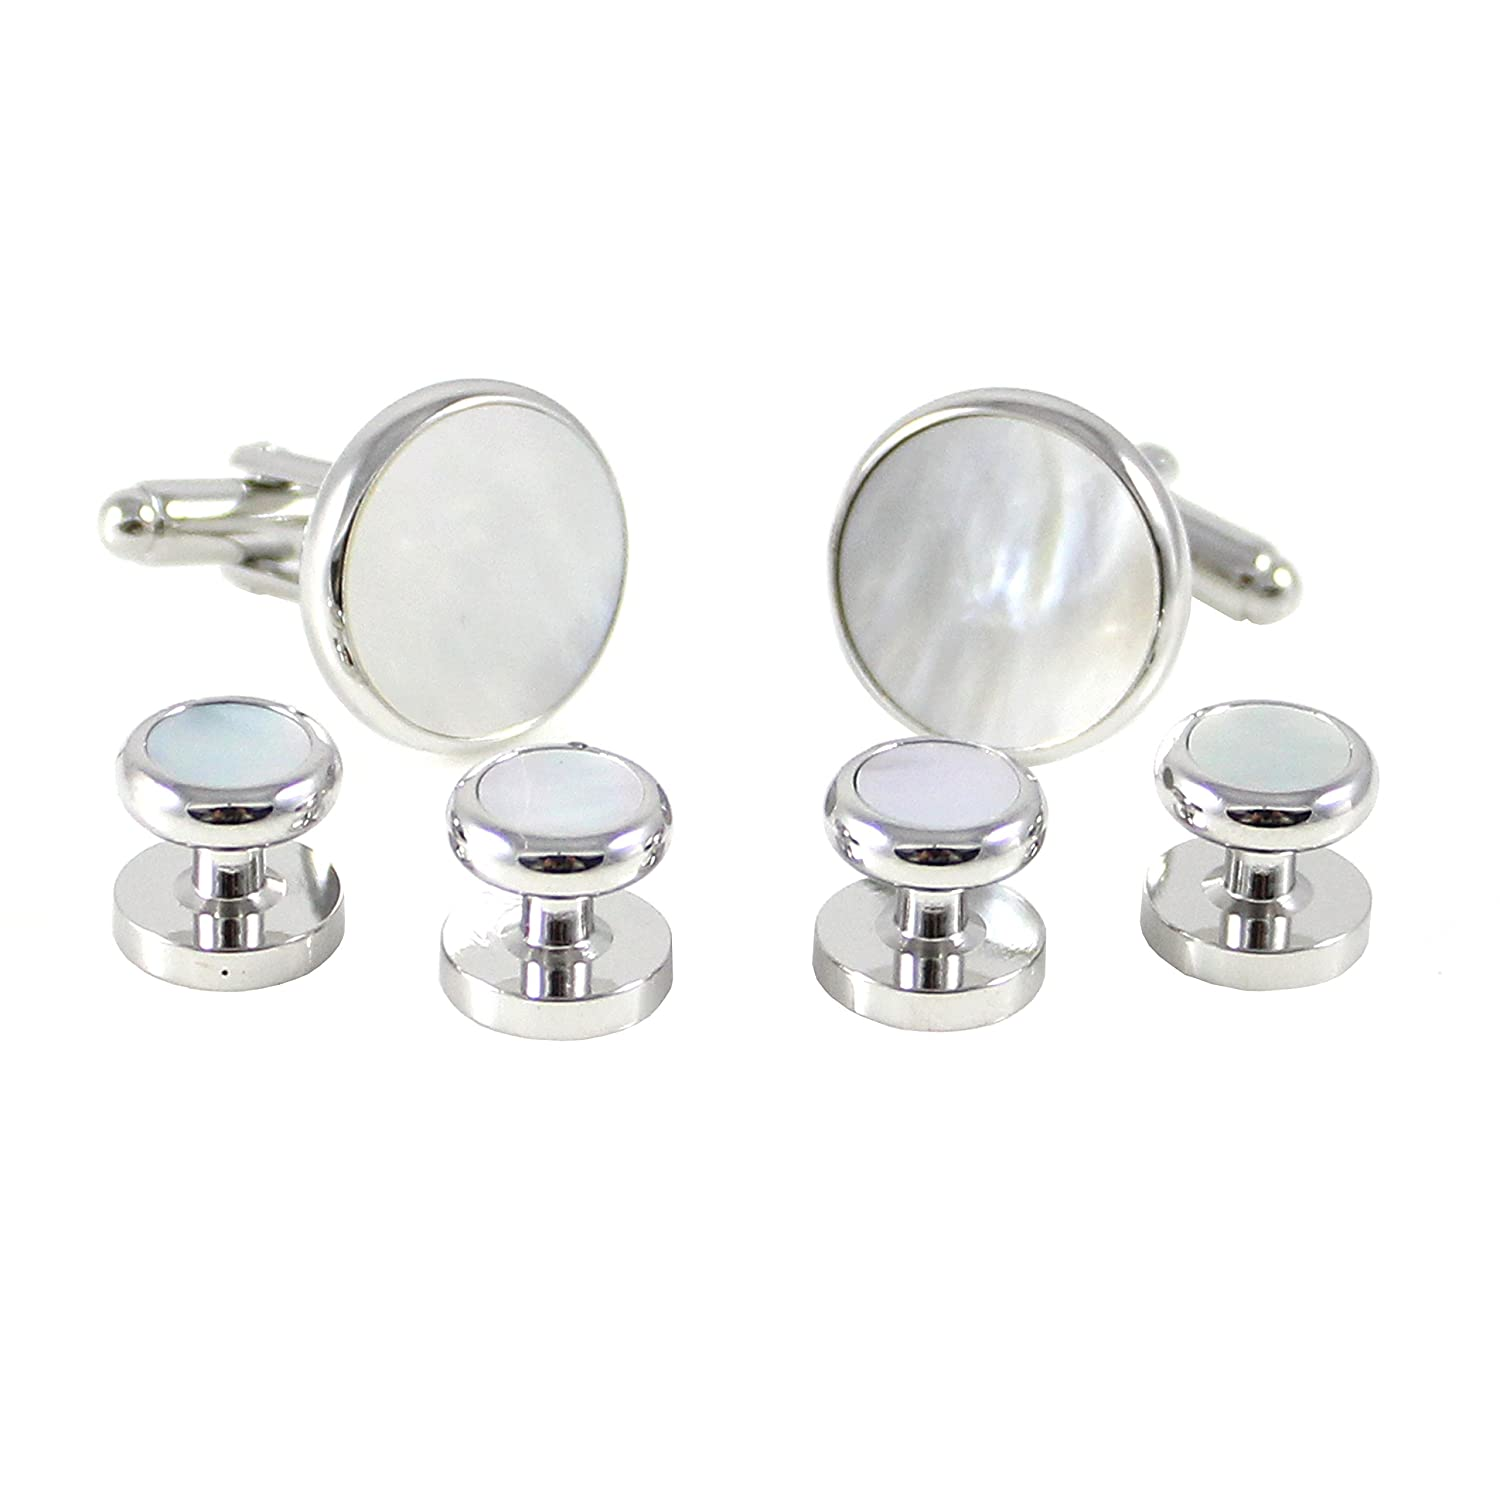 MENDEPOT Rhodium Plated Round MOP Cuff Link And Shirt Studs Formal Wear Set With Box MD0464